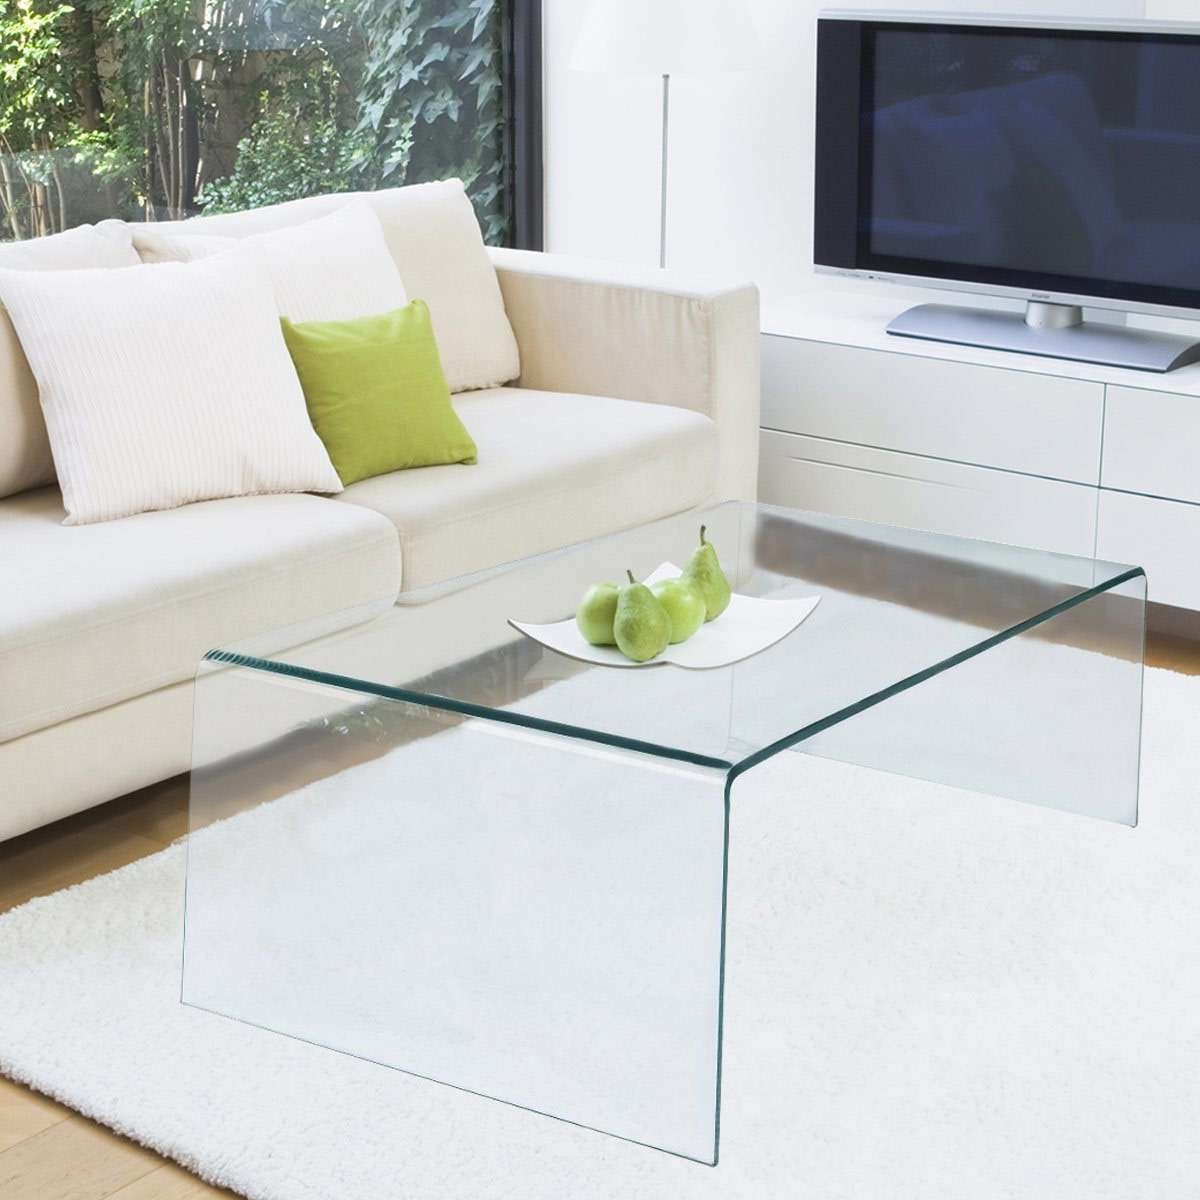 Recent All Glass Coffee Tables Intended For The Best Glass Coffee Tables Under $ (View 2 of 20)